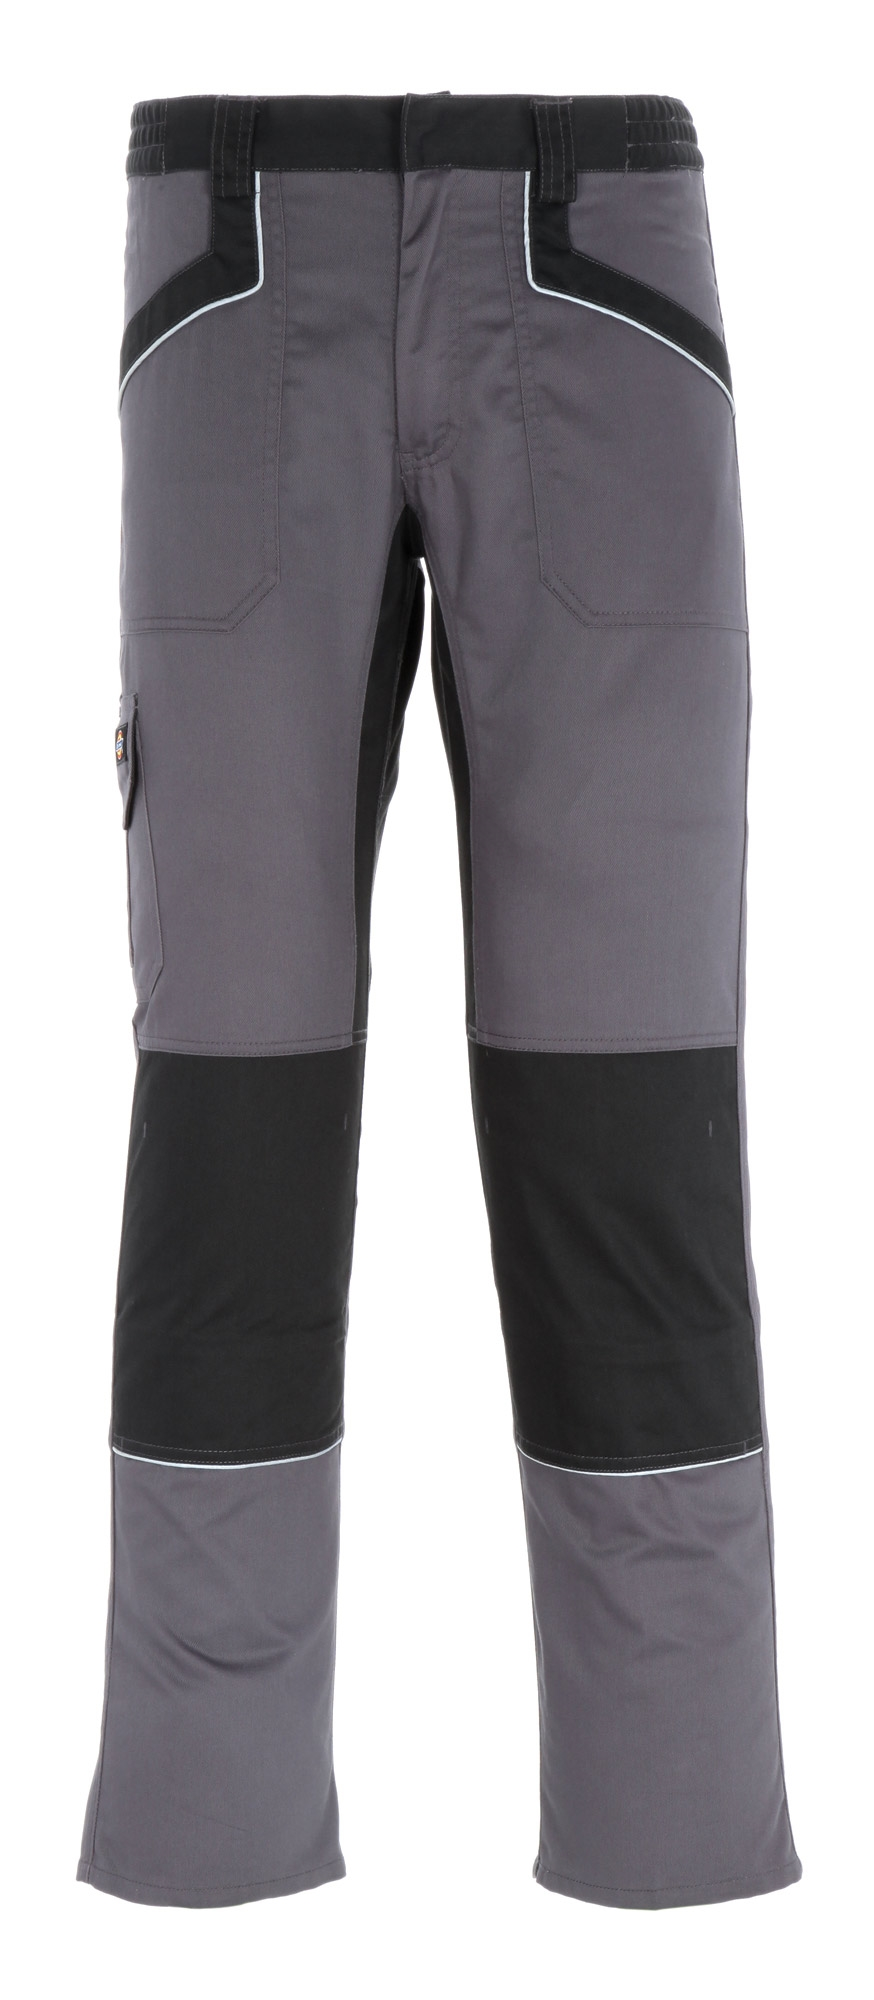 IND260 Trousers Grey/Black 42